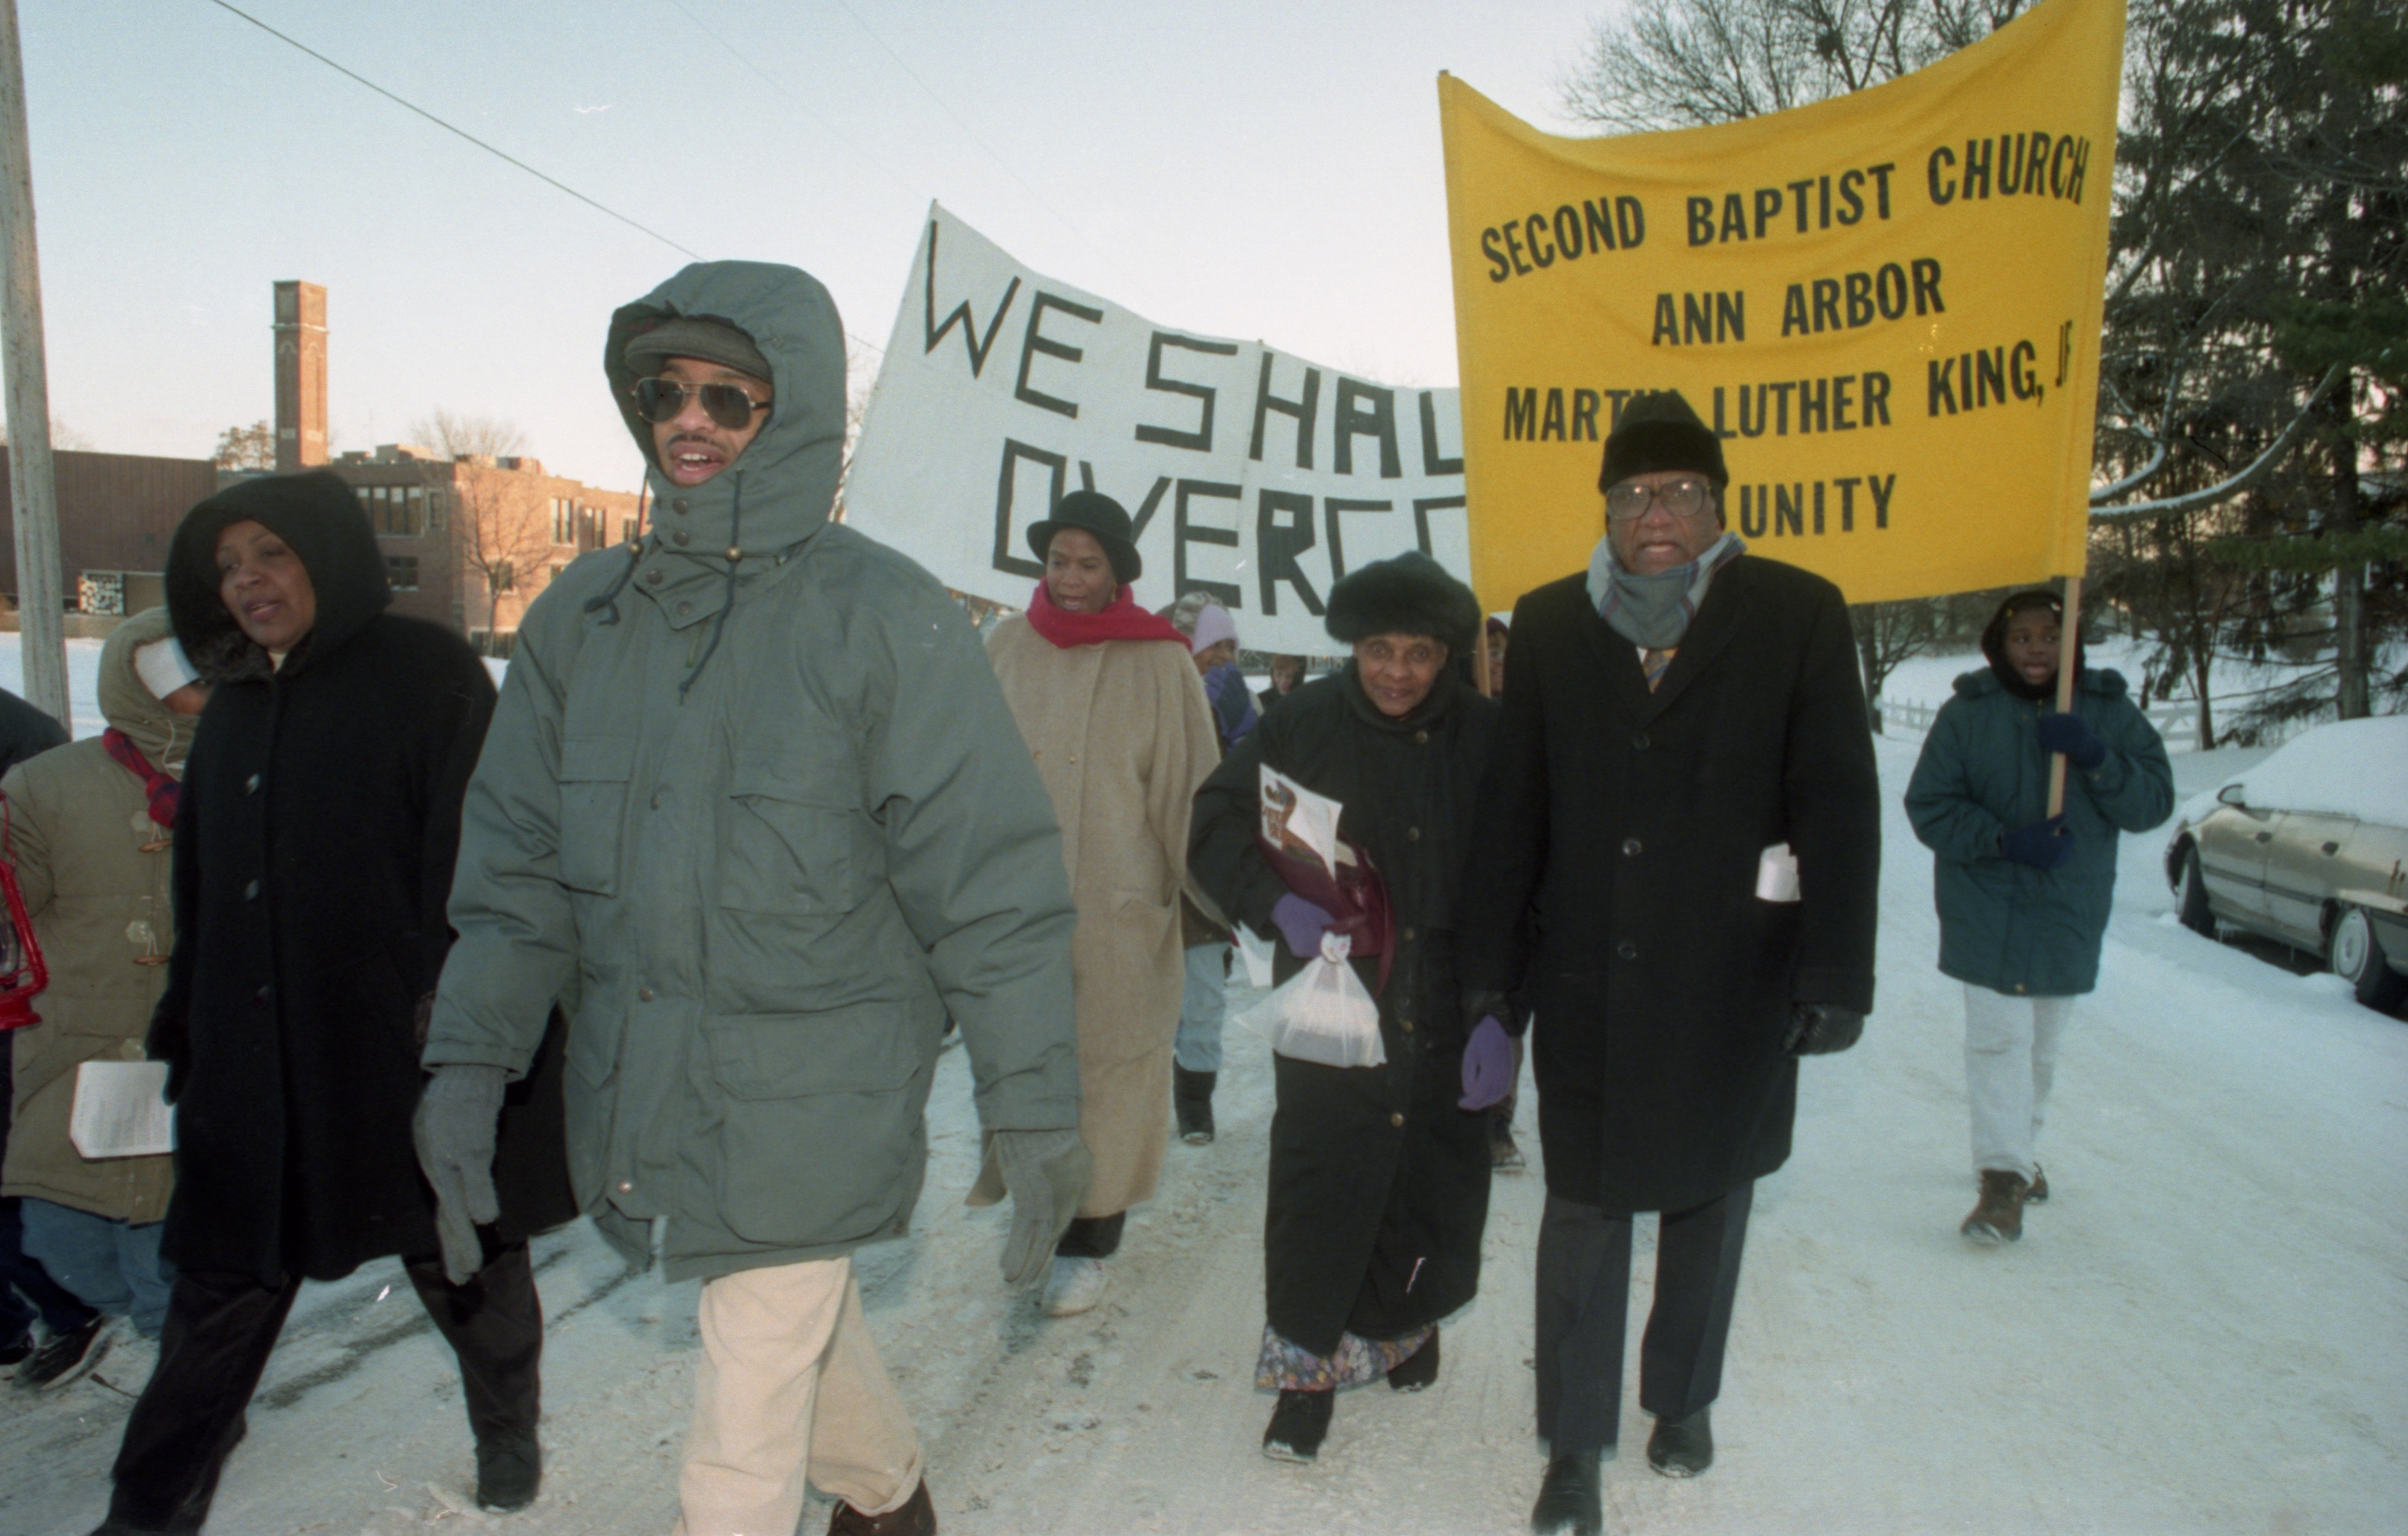 Second Baptist Church Sponsors Annual Unity March To Honor Dr. Martin Luther King Jr., January 1997 image